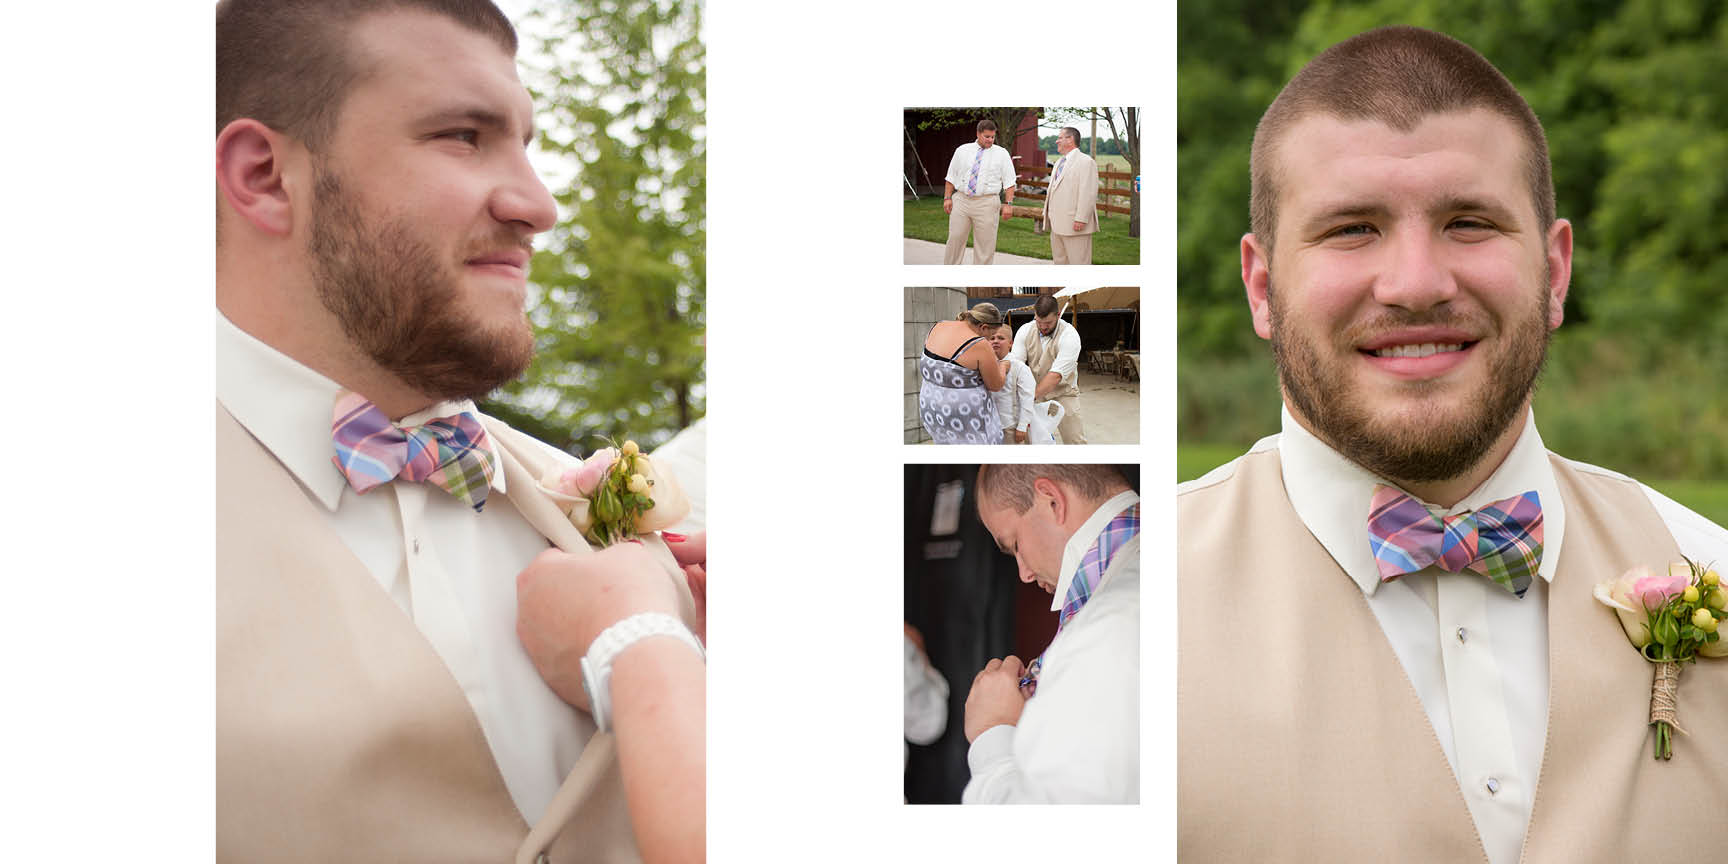 Handsome groom, Jake, and groomsmen get ready before the ceremony.